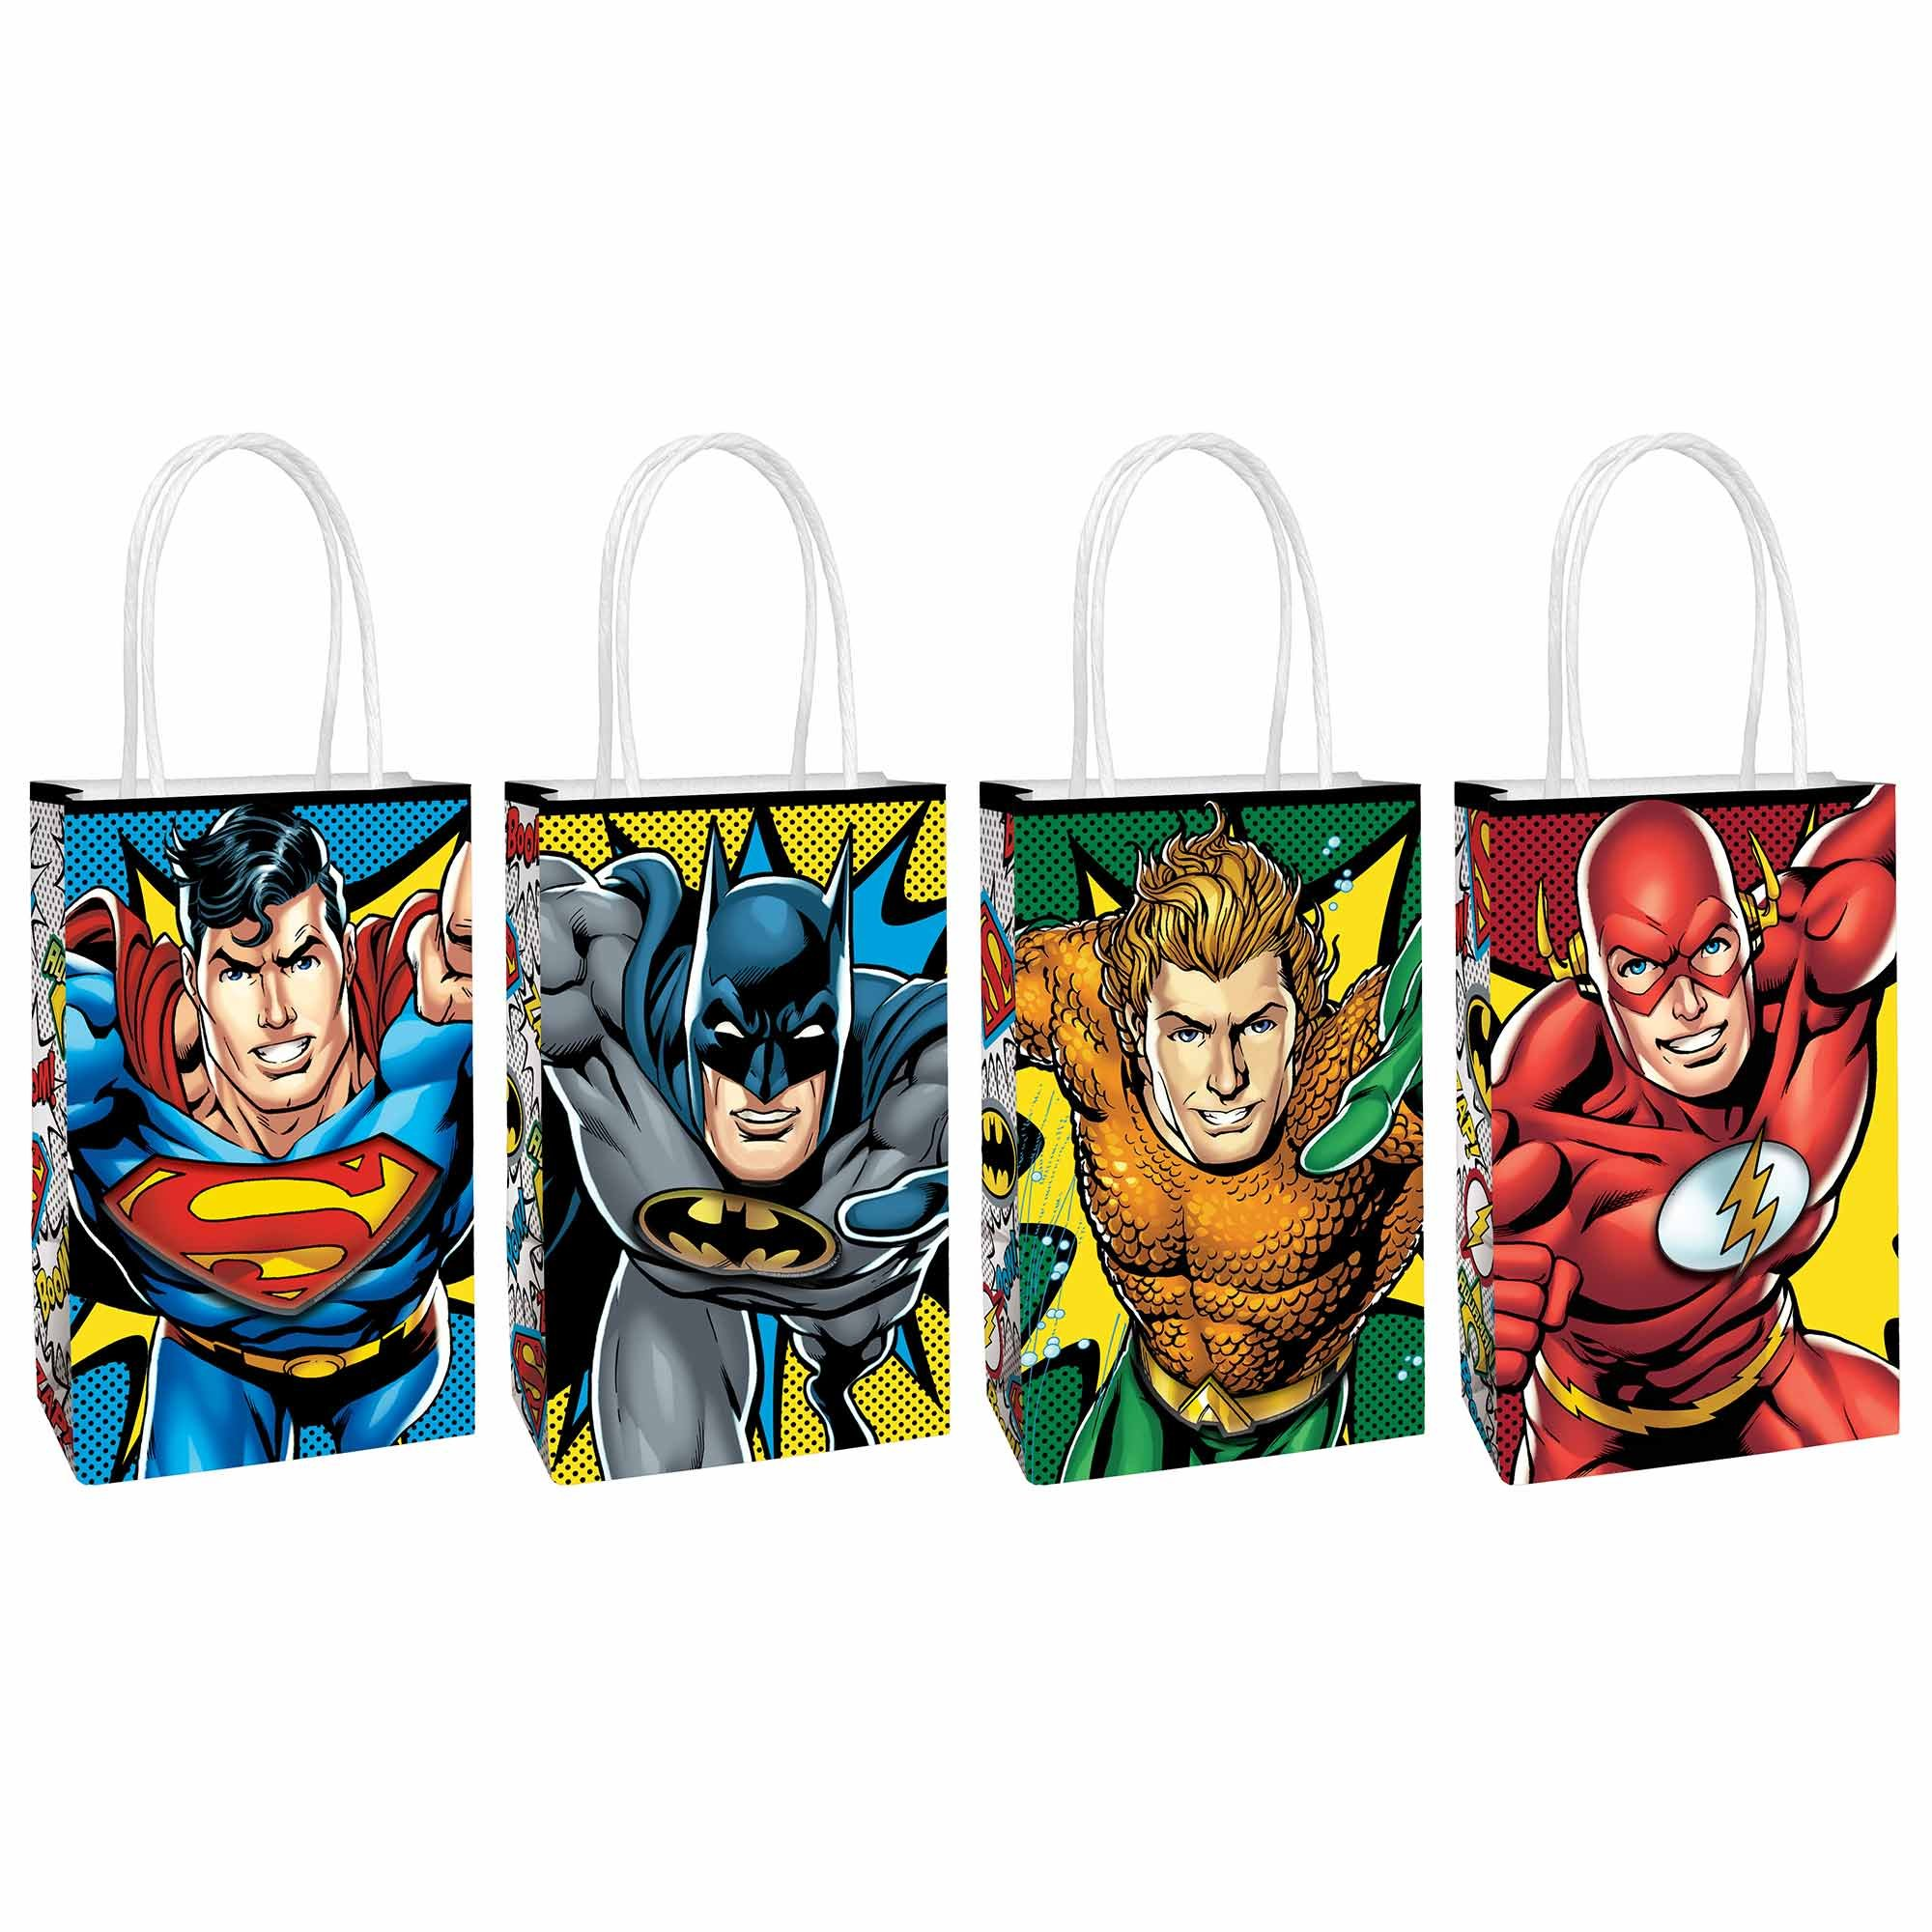 Justice League Heroes Unite Create Your Own Paper Kraft Bags